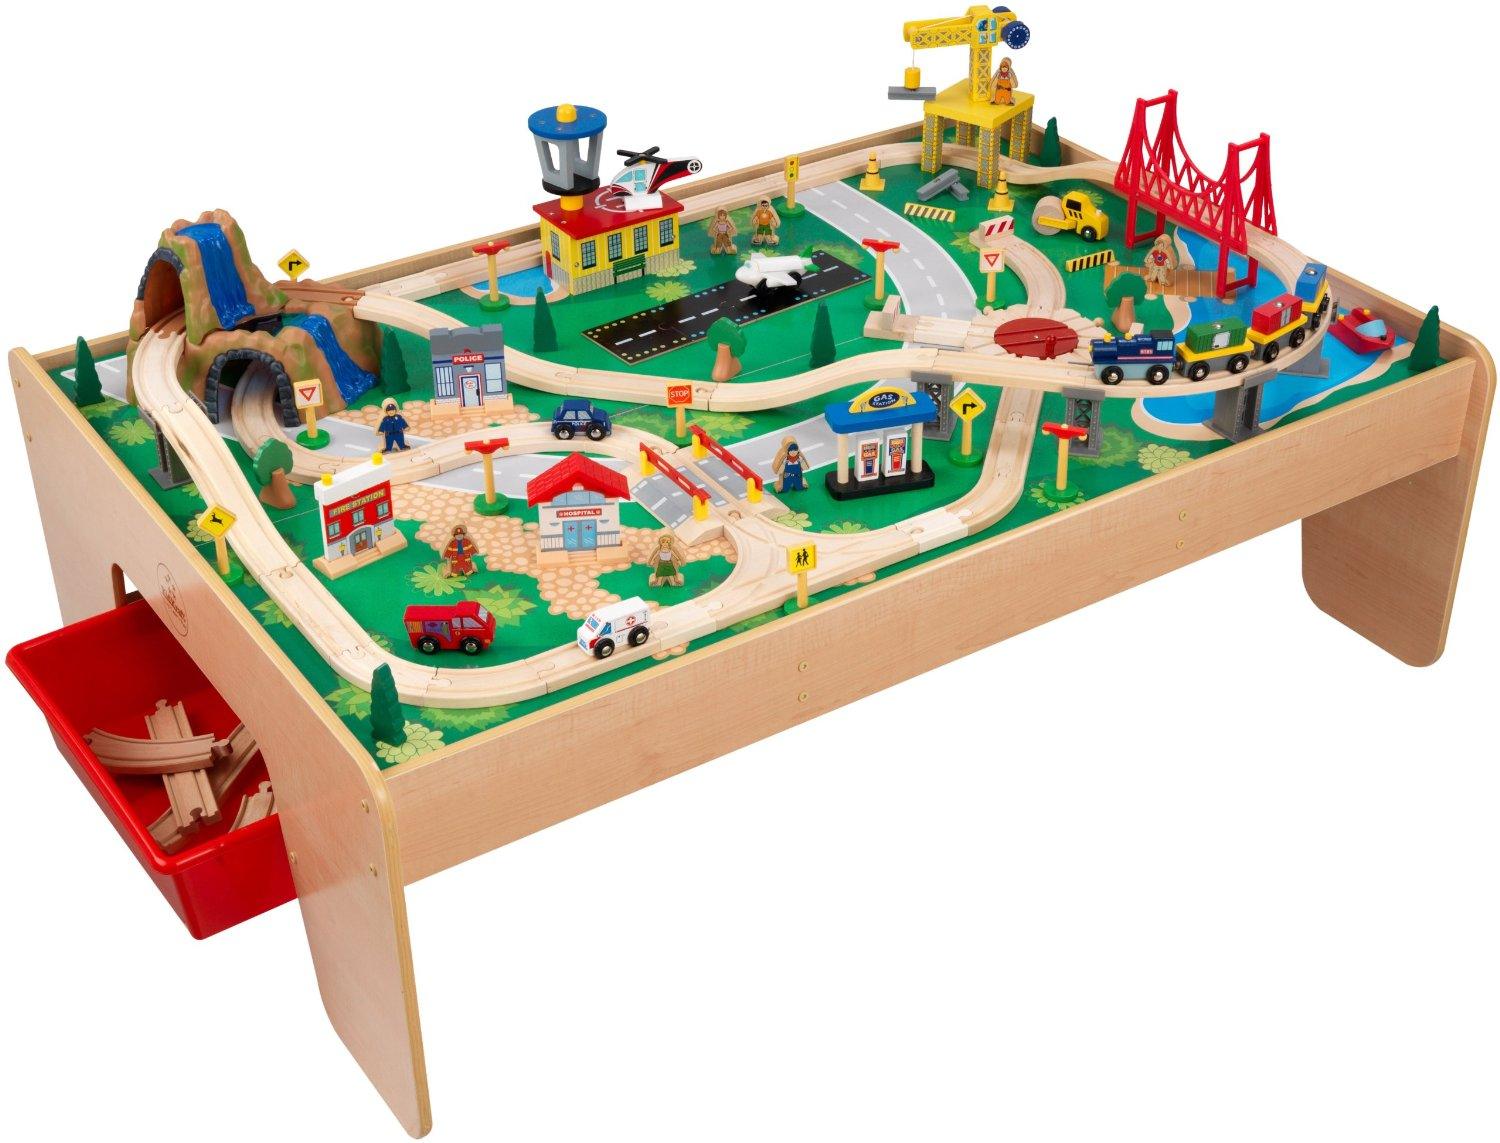 What Makes A Kids Favorite Toy : Best train sets for kids what are the options